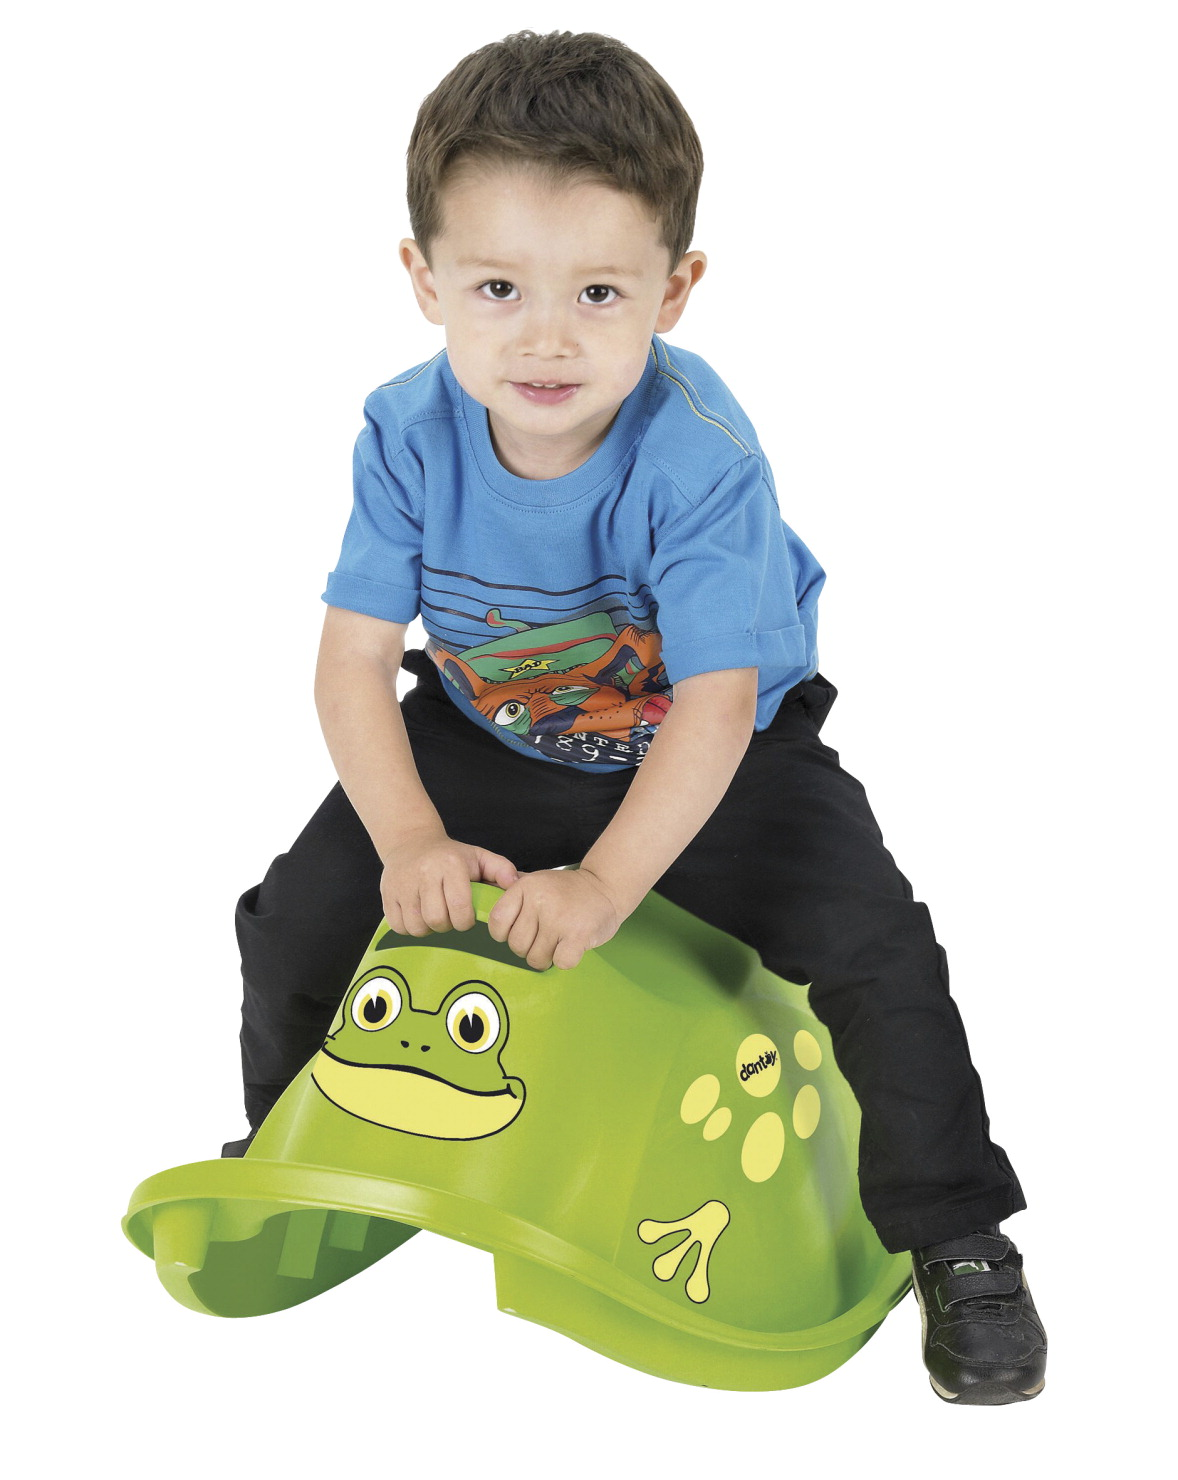 Dantoy Plastic Frog Rocker, 2 Pounds, Ages 12 Months and Up, Green